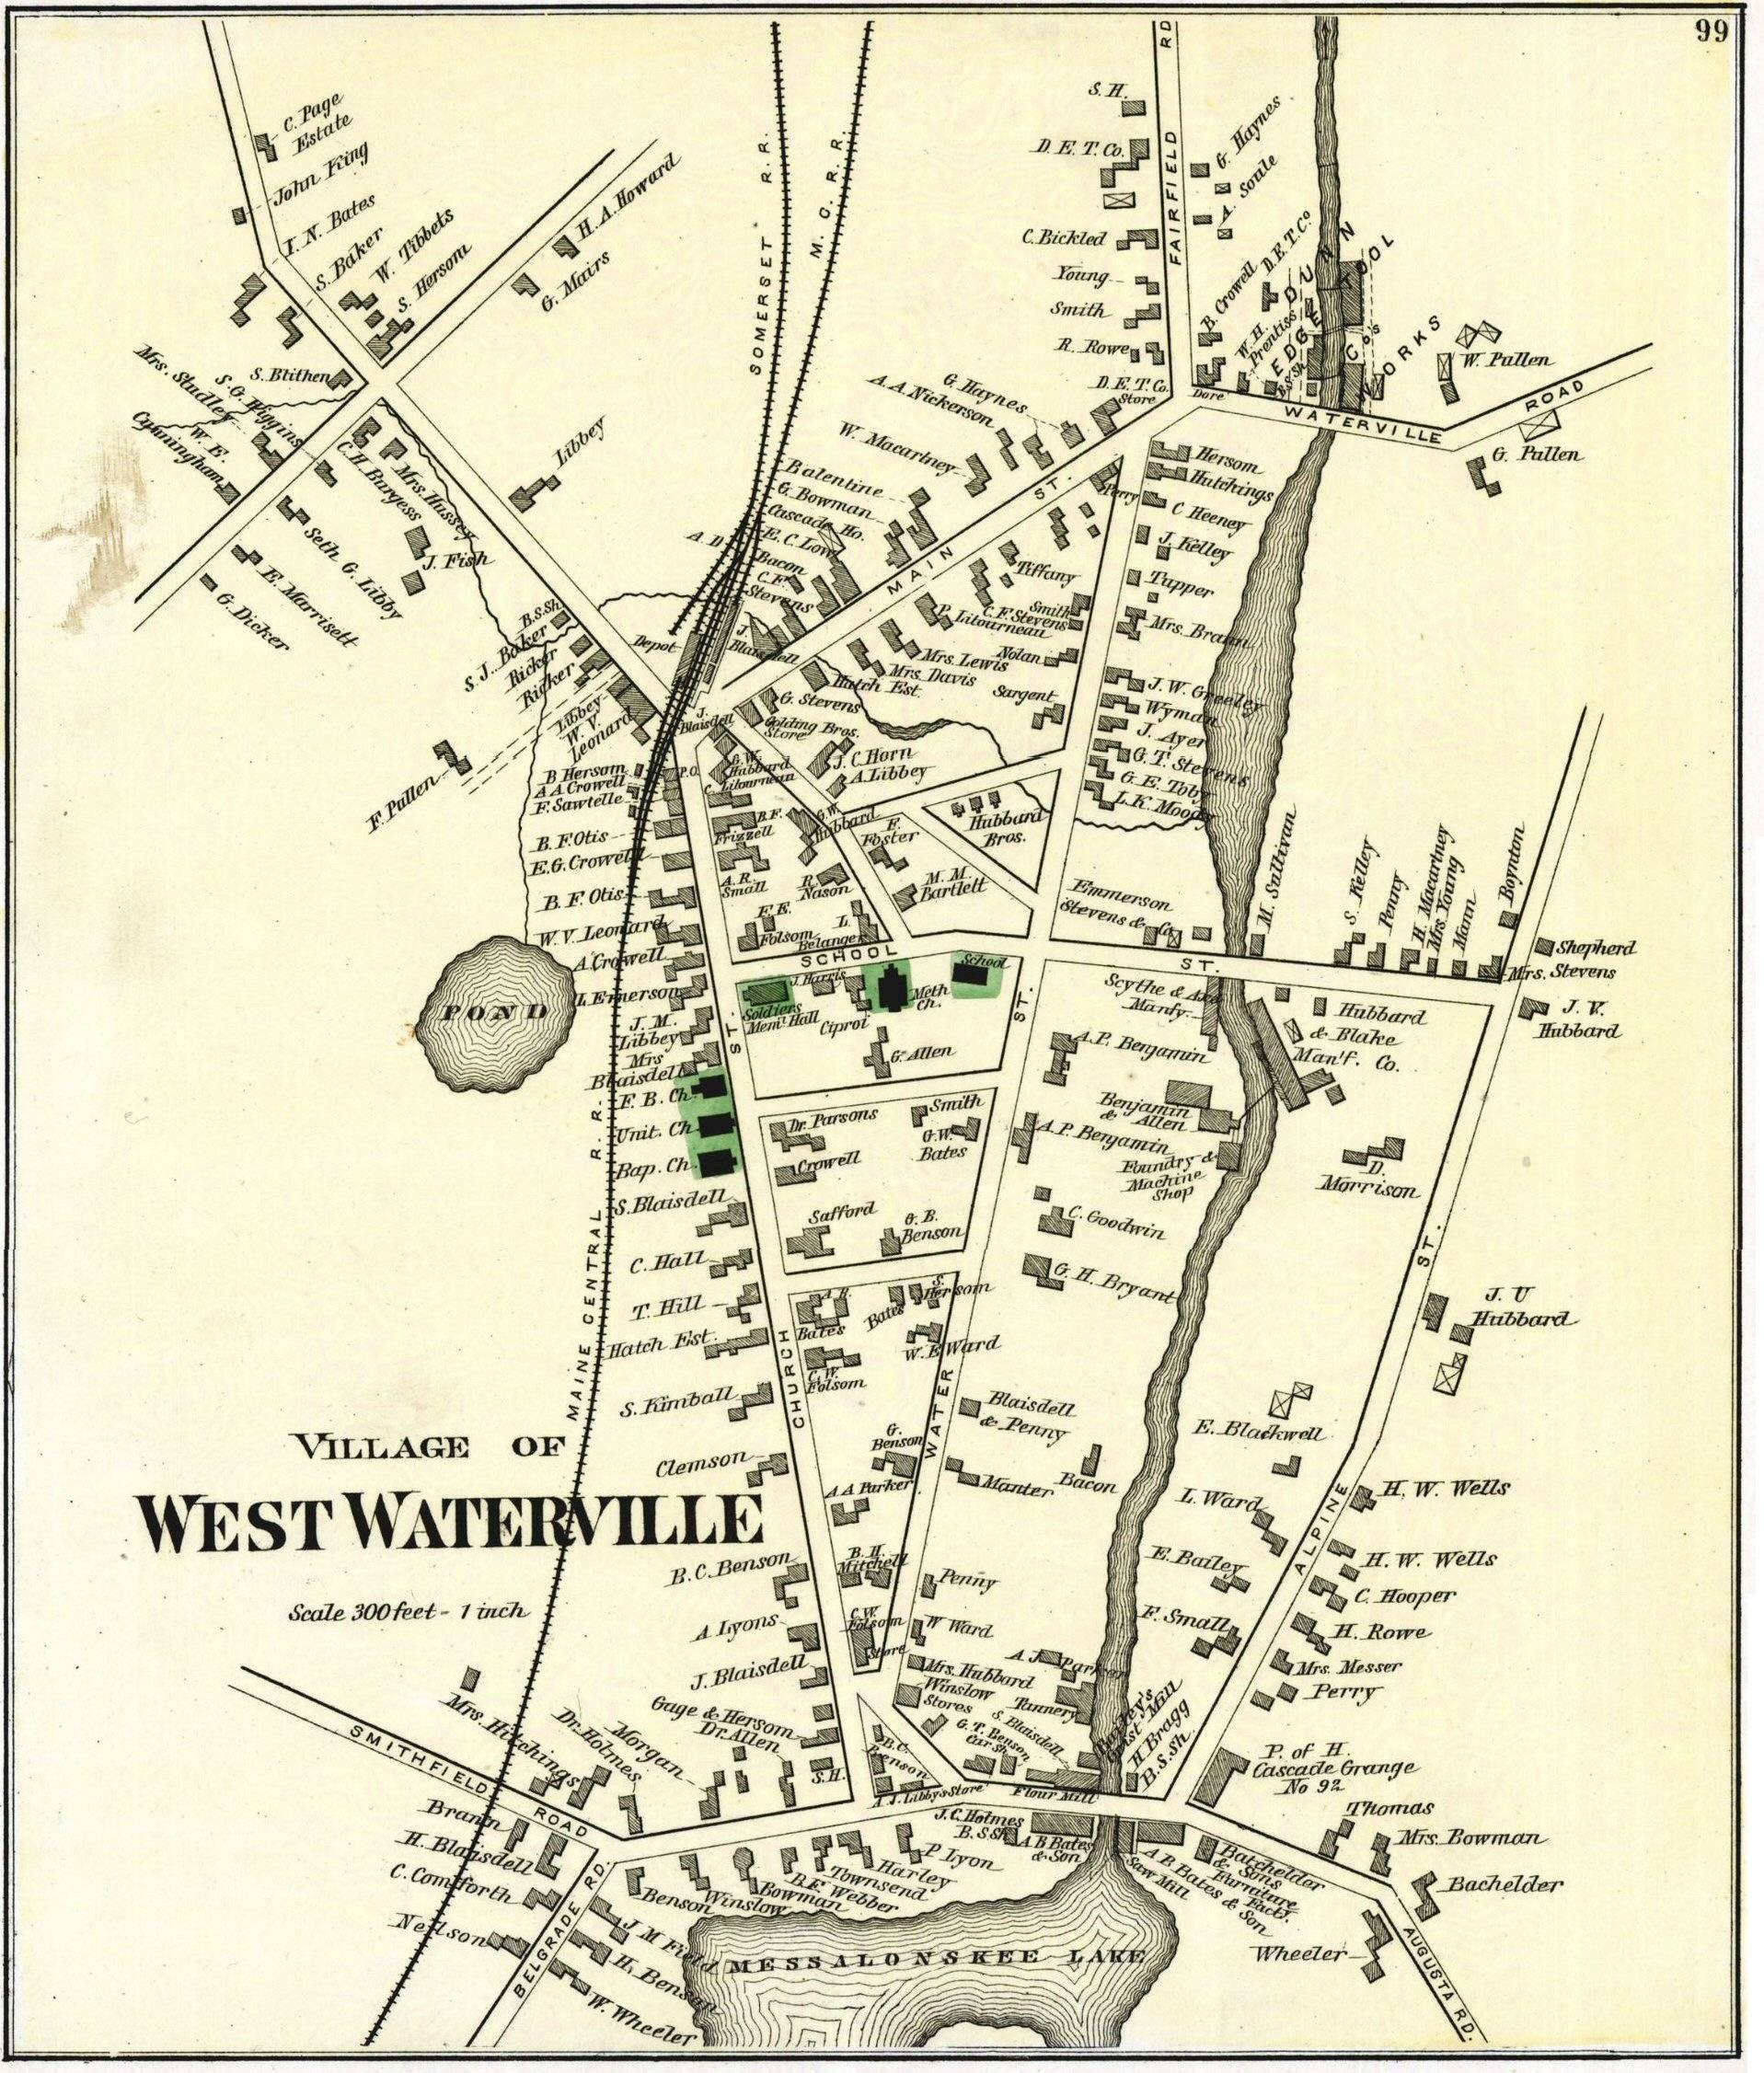 map of waterville maine Historical Maps Of Oakland map of waterville maine